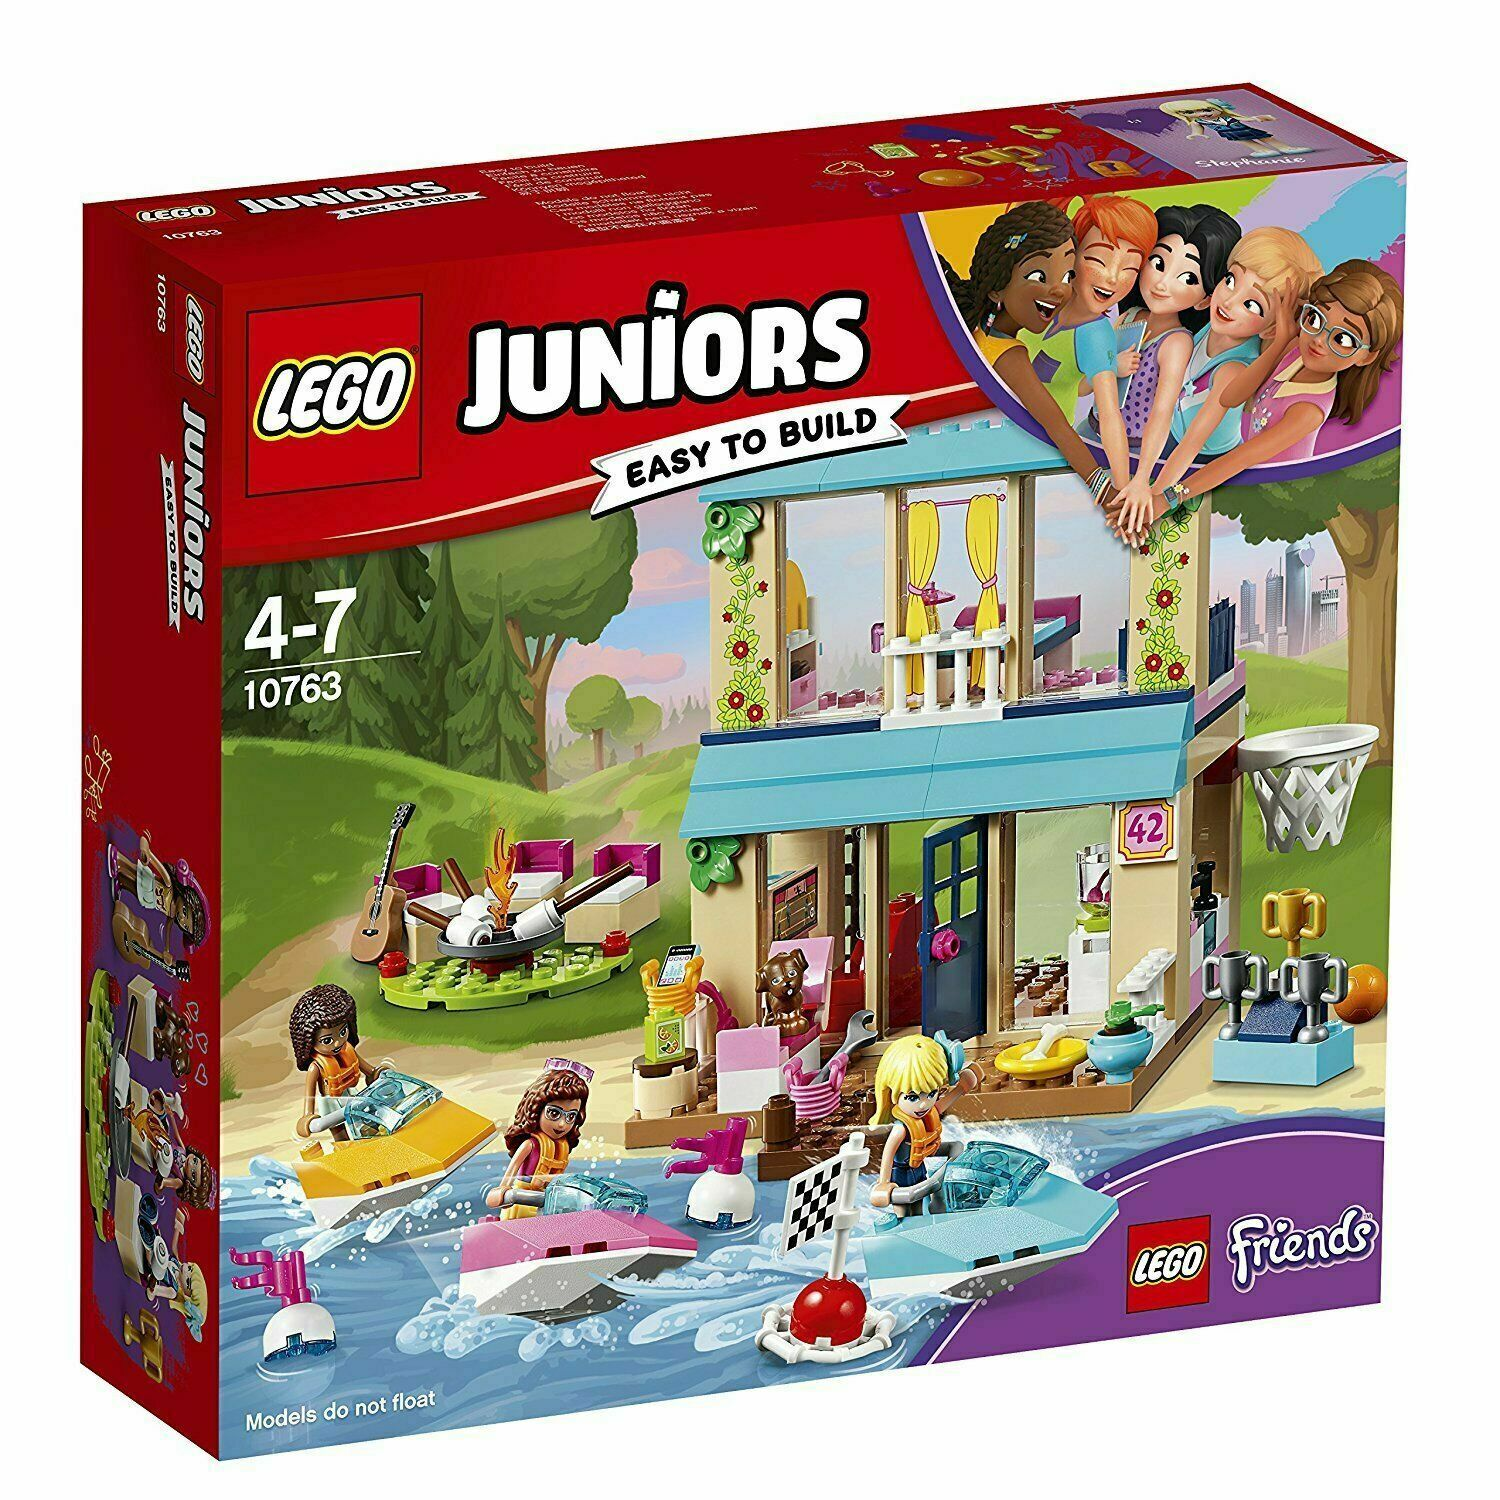 Lego Juniors 10763 Stephanie's House House House at the Lake - New Sealed 3a7268